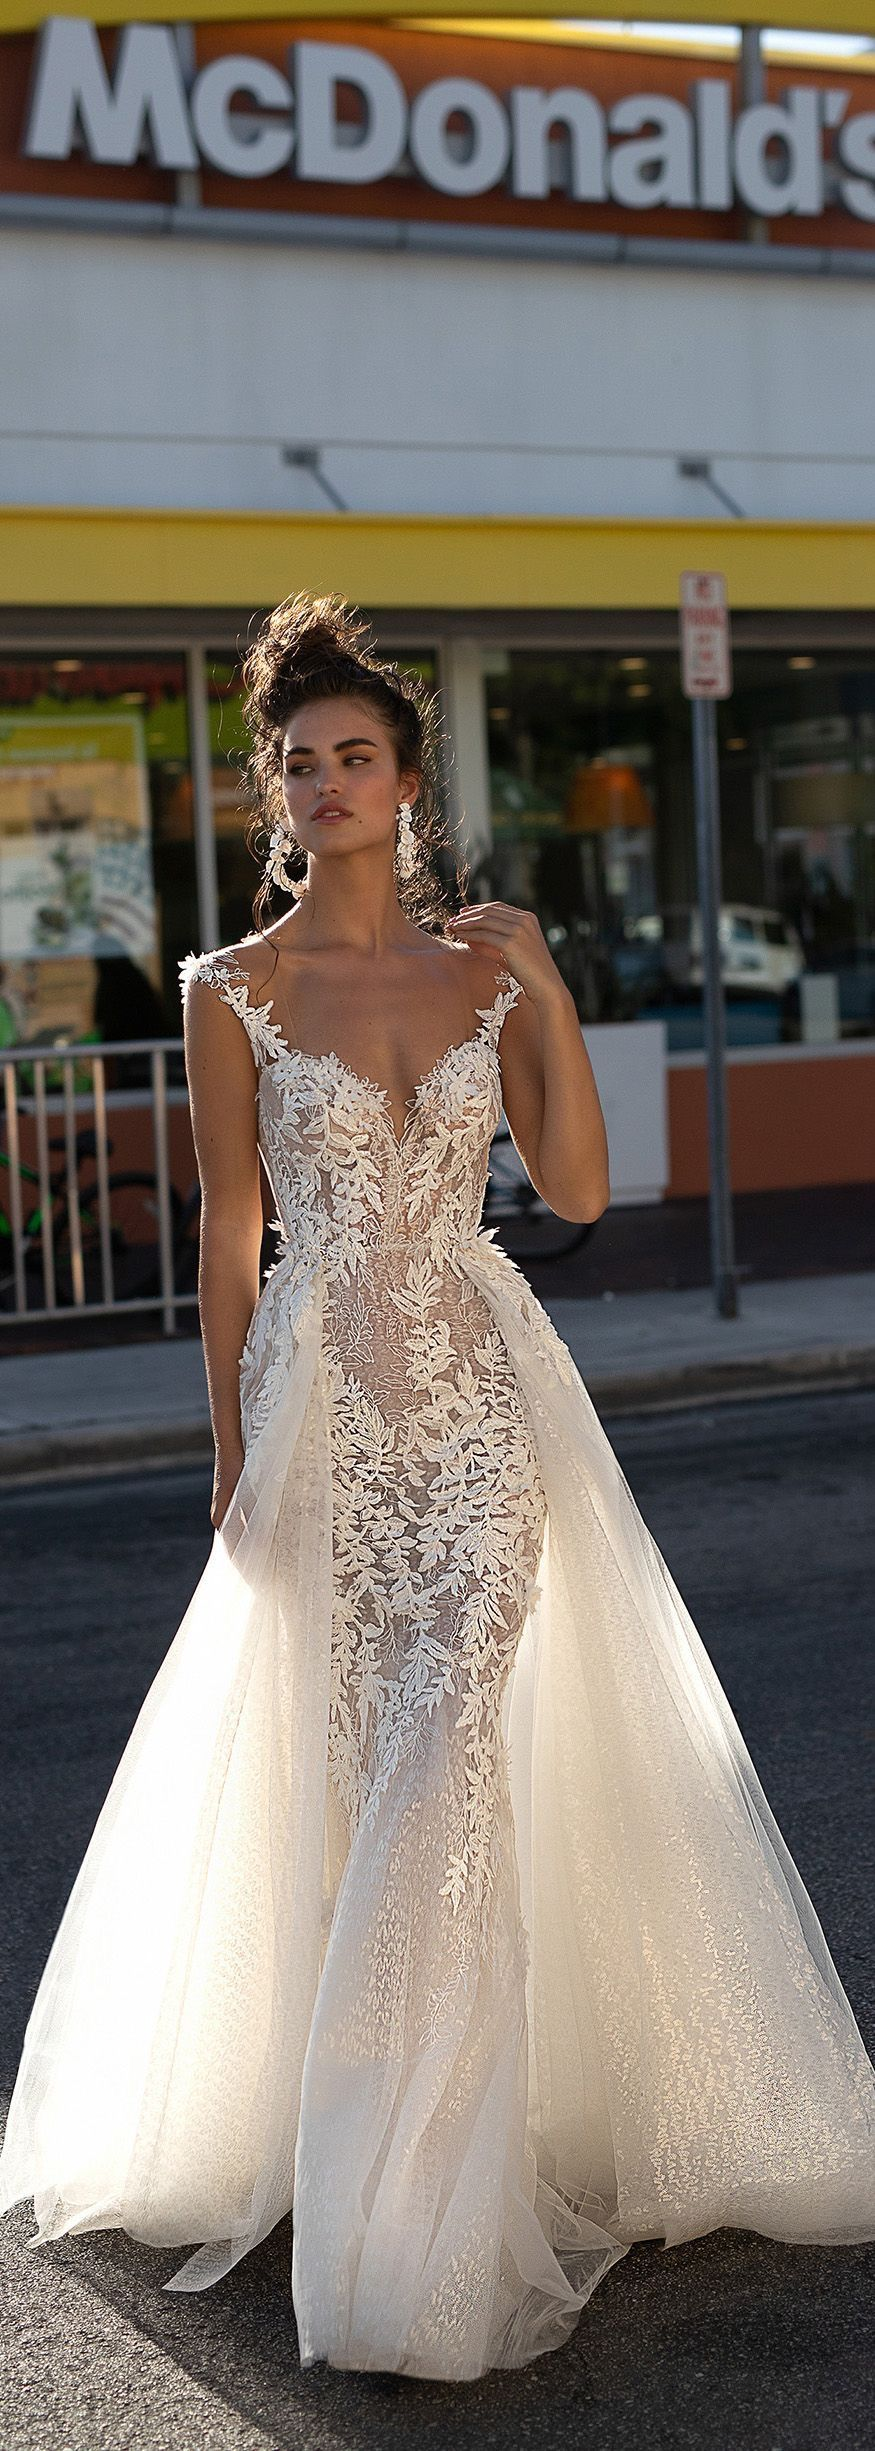 The bustle wedding dresses   By Berta at The Bustle Del Mar  Bustle Gowns  Pinterest